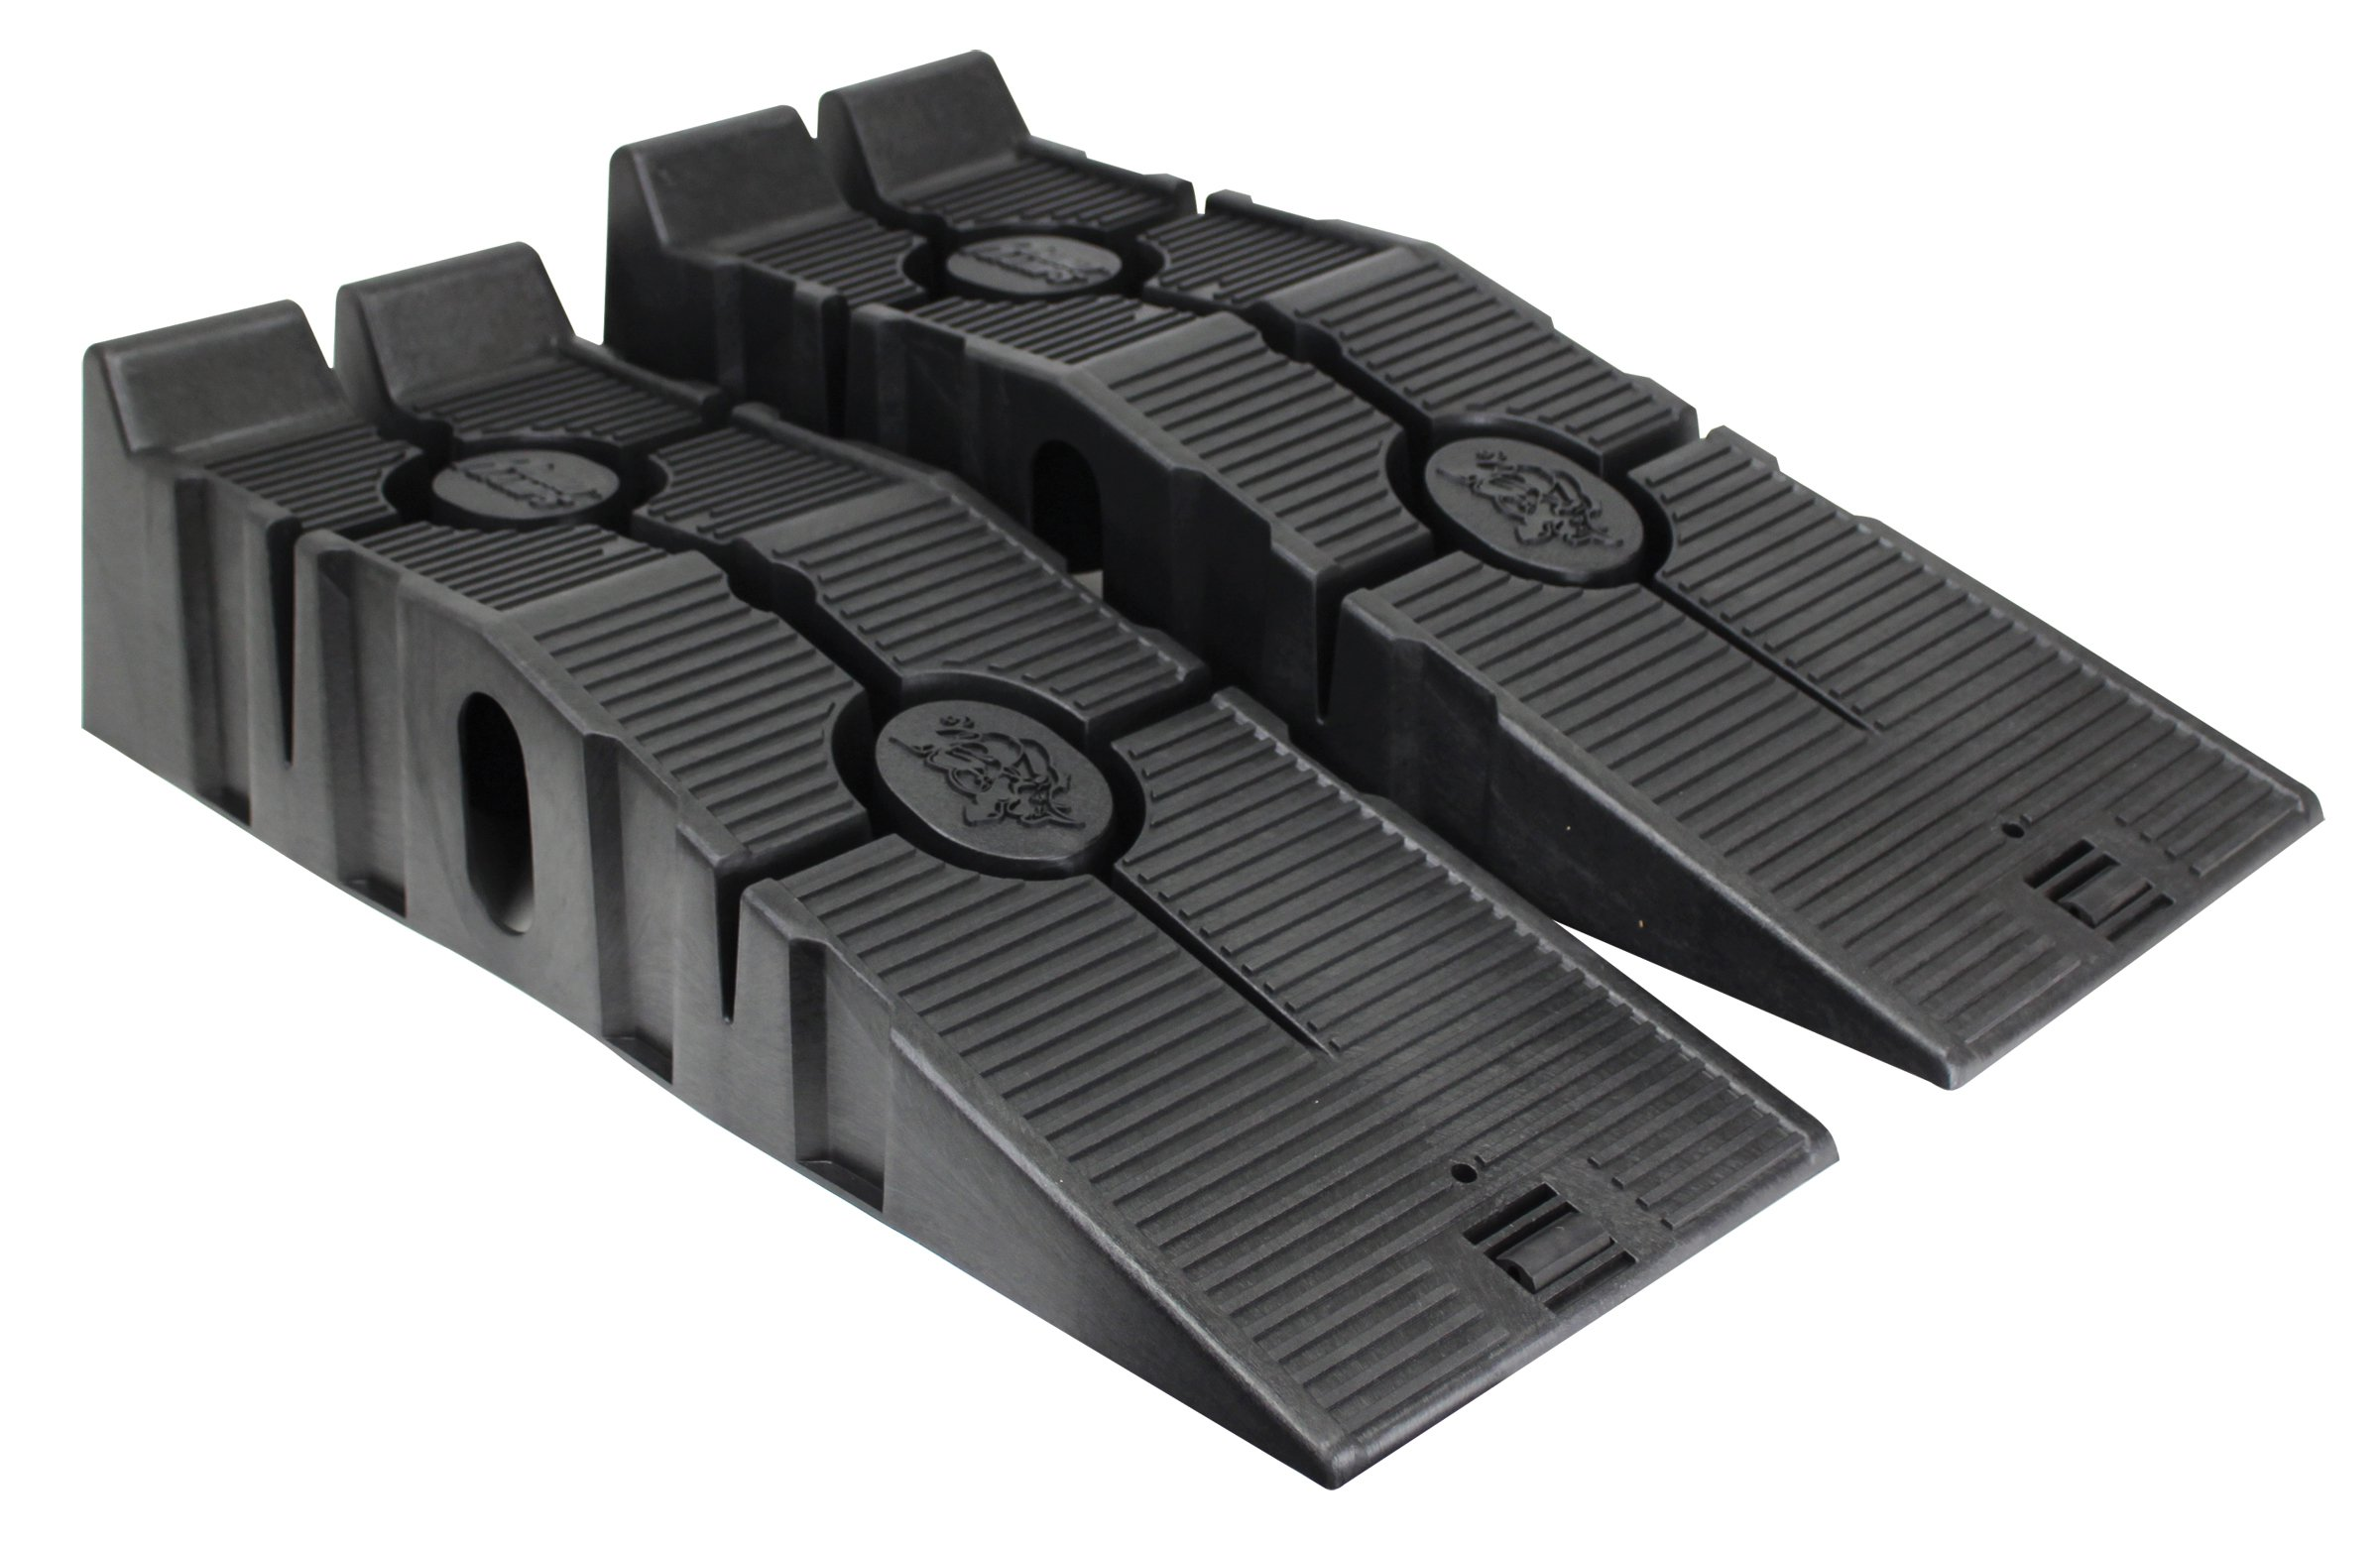 Black car ramps shower tray waste fitting